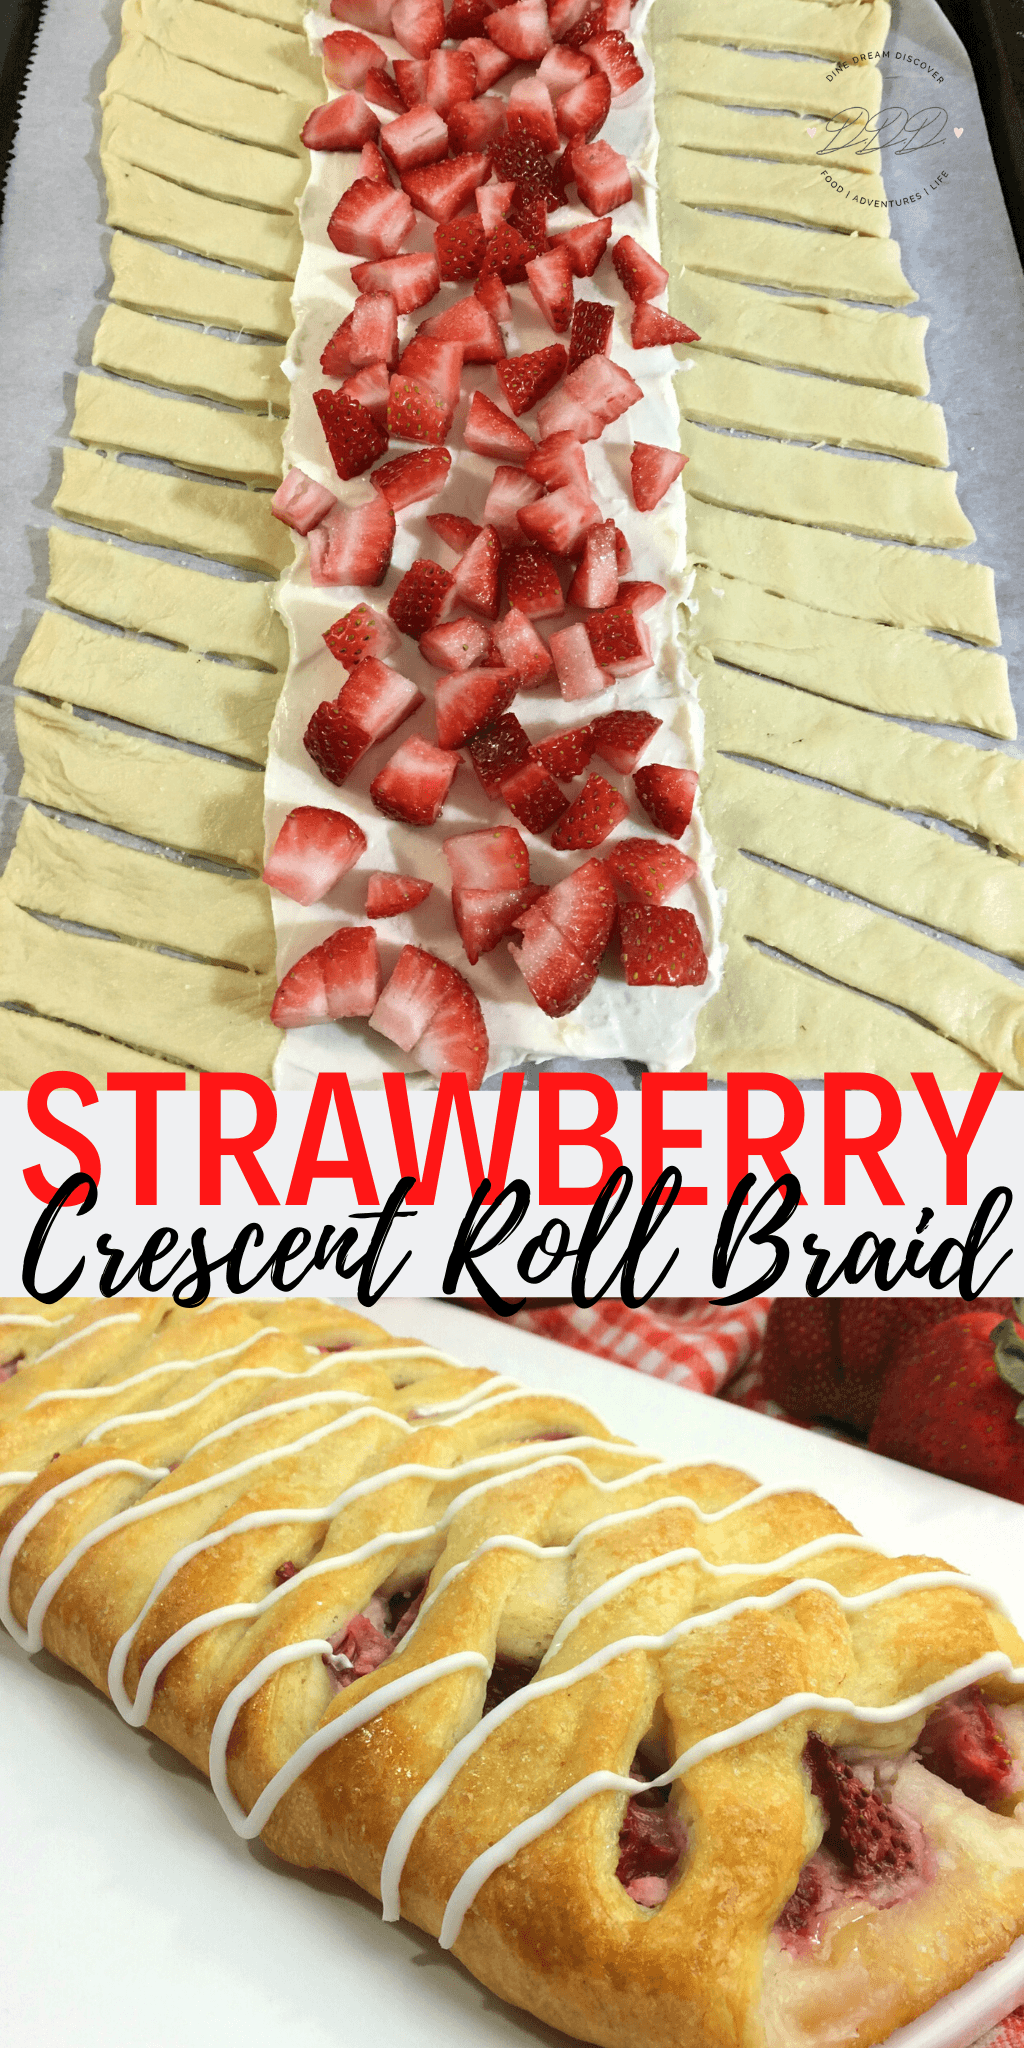 Strawberry Crescent Roll Braid